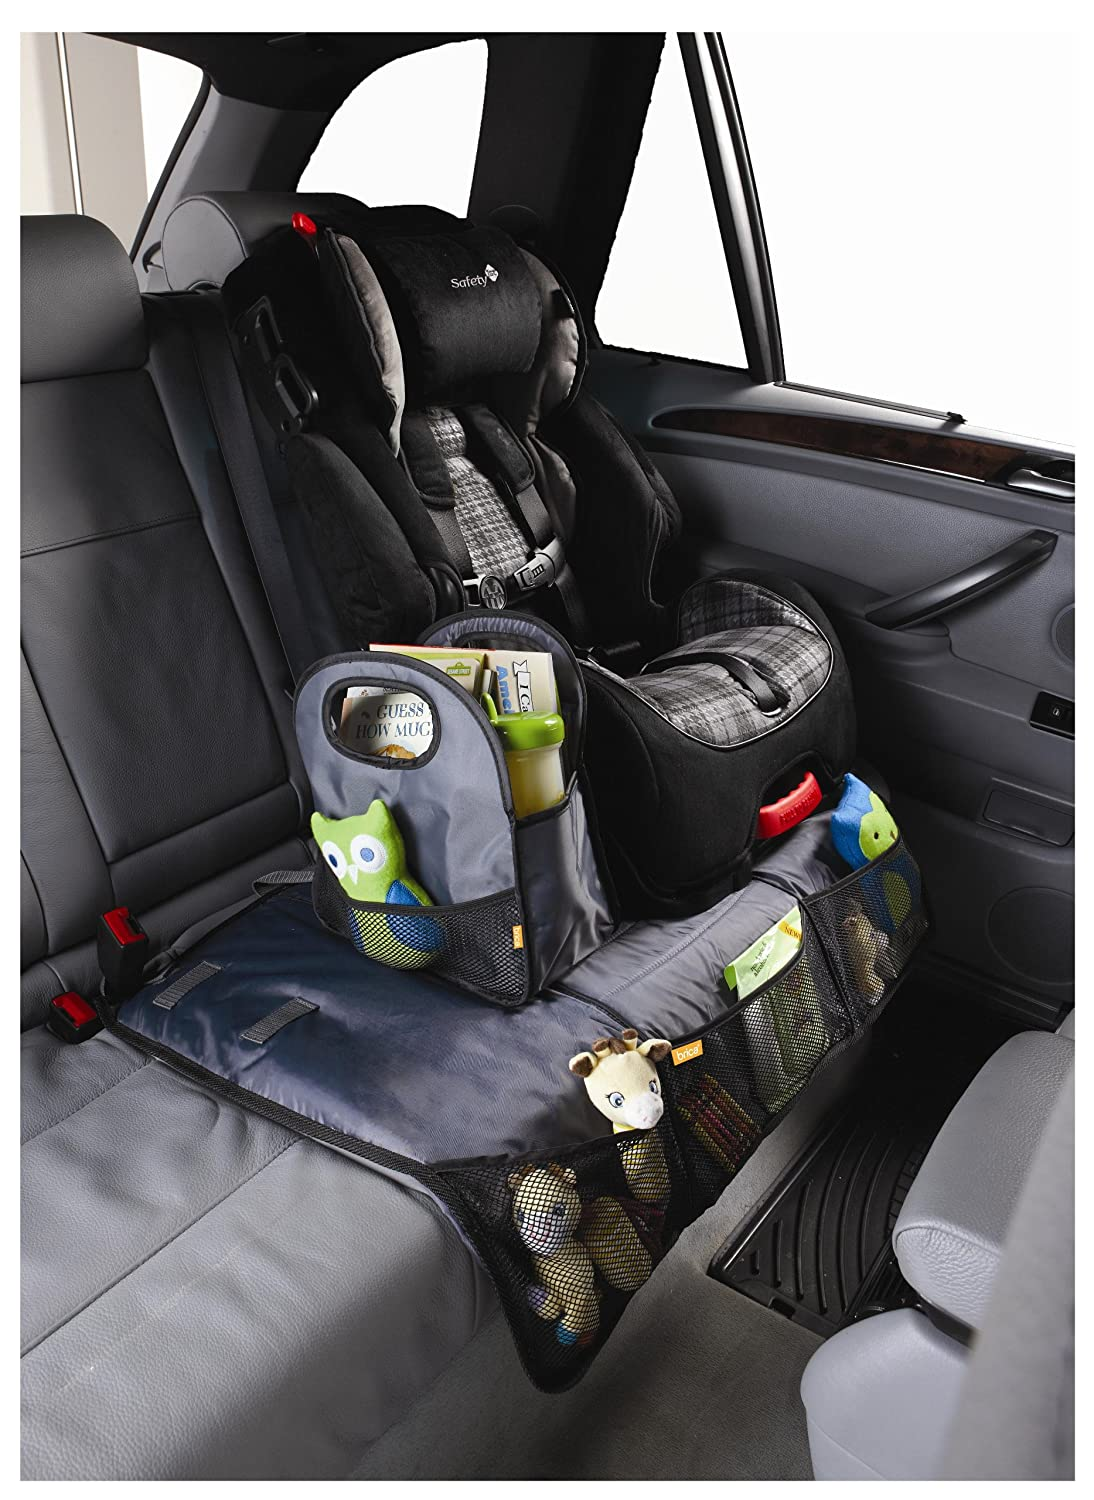 Amazon.com : Brica Back Seat Storage with Seat Protector, Gray ...